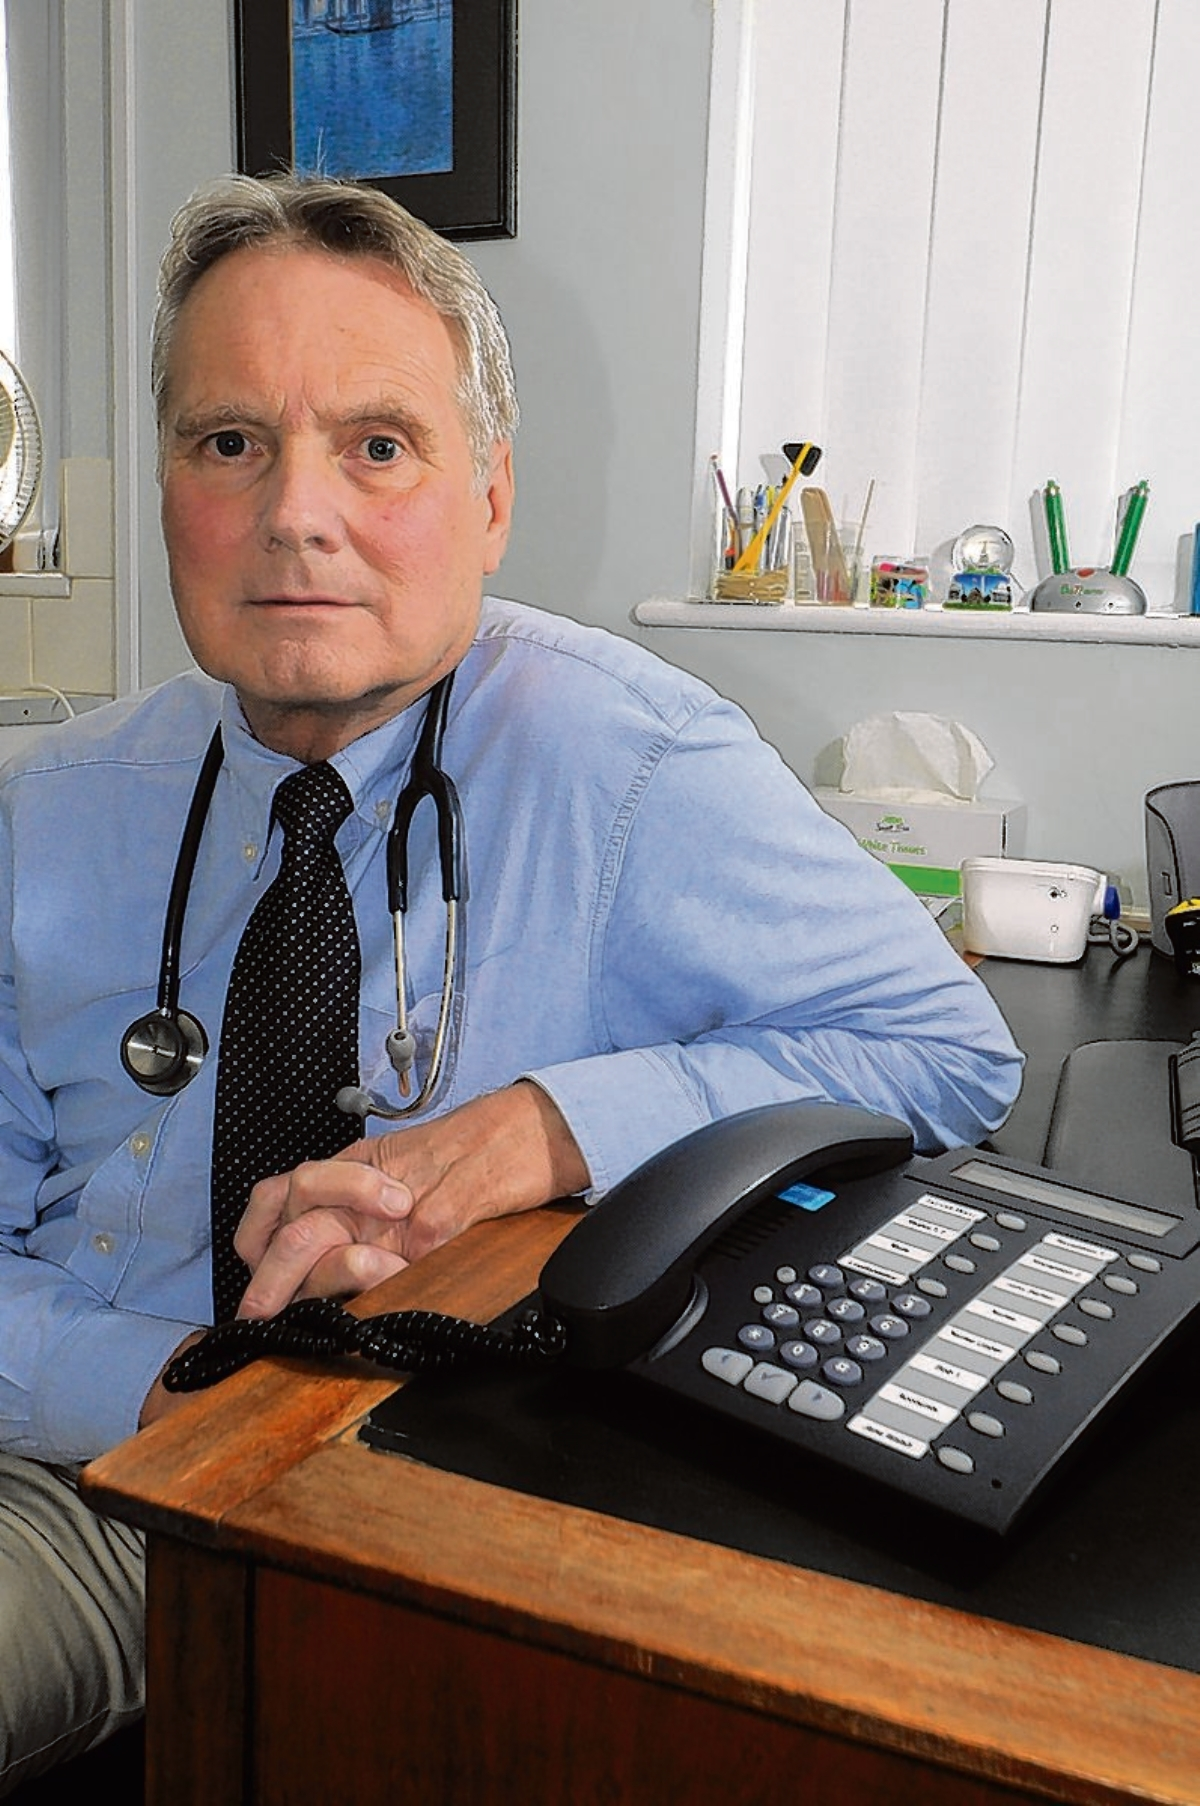 Dr John Cormack, who is now called Dr John Cormack - the Family Doctor who works for the NHS for free